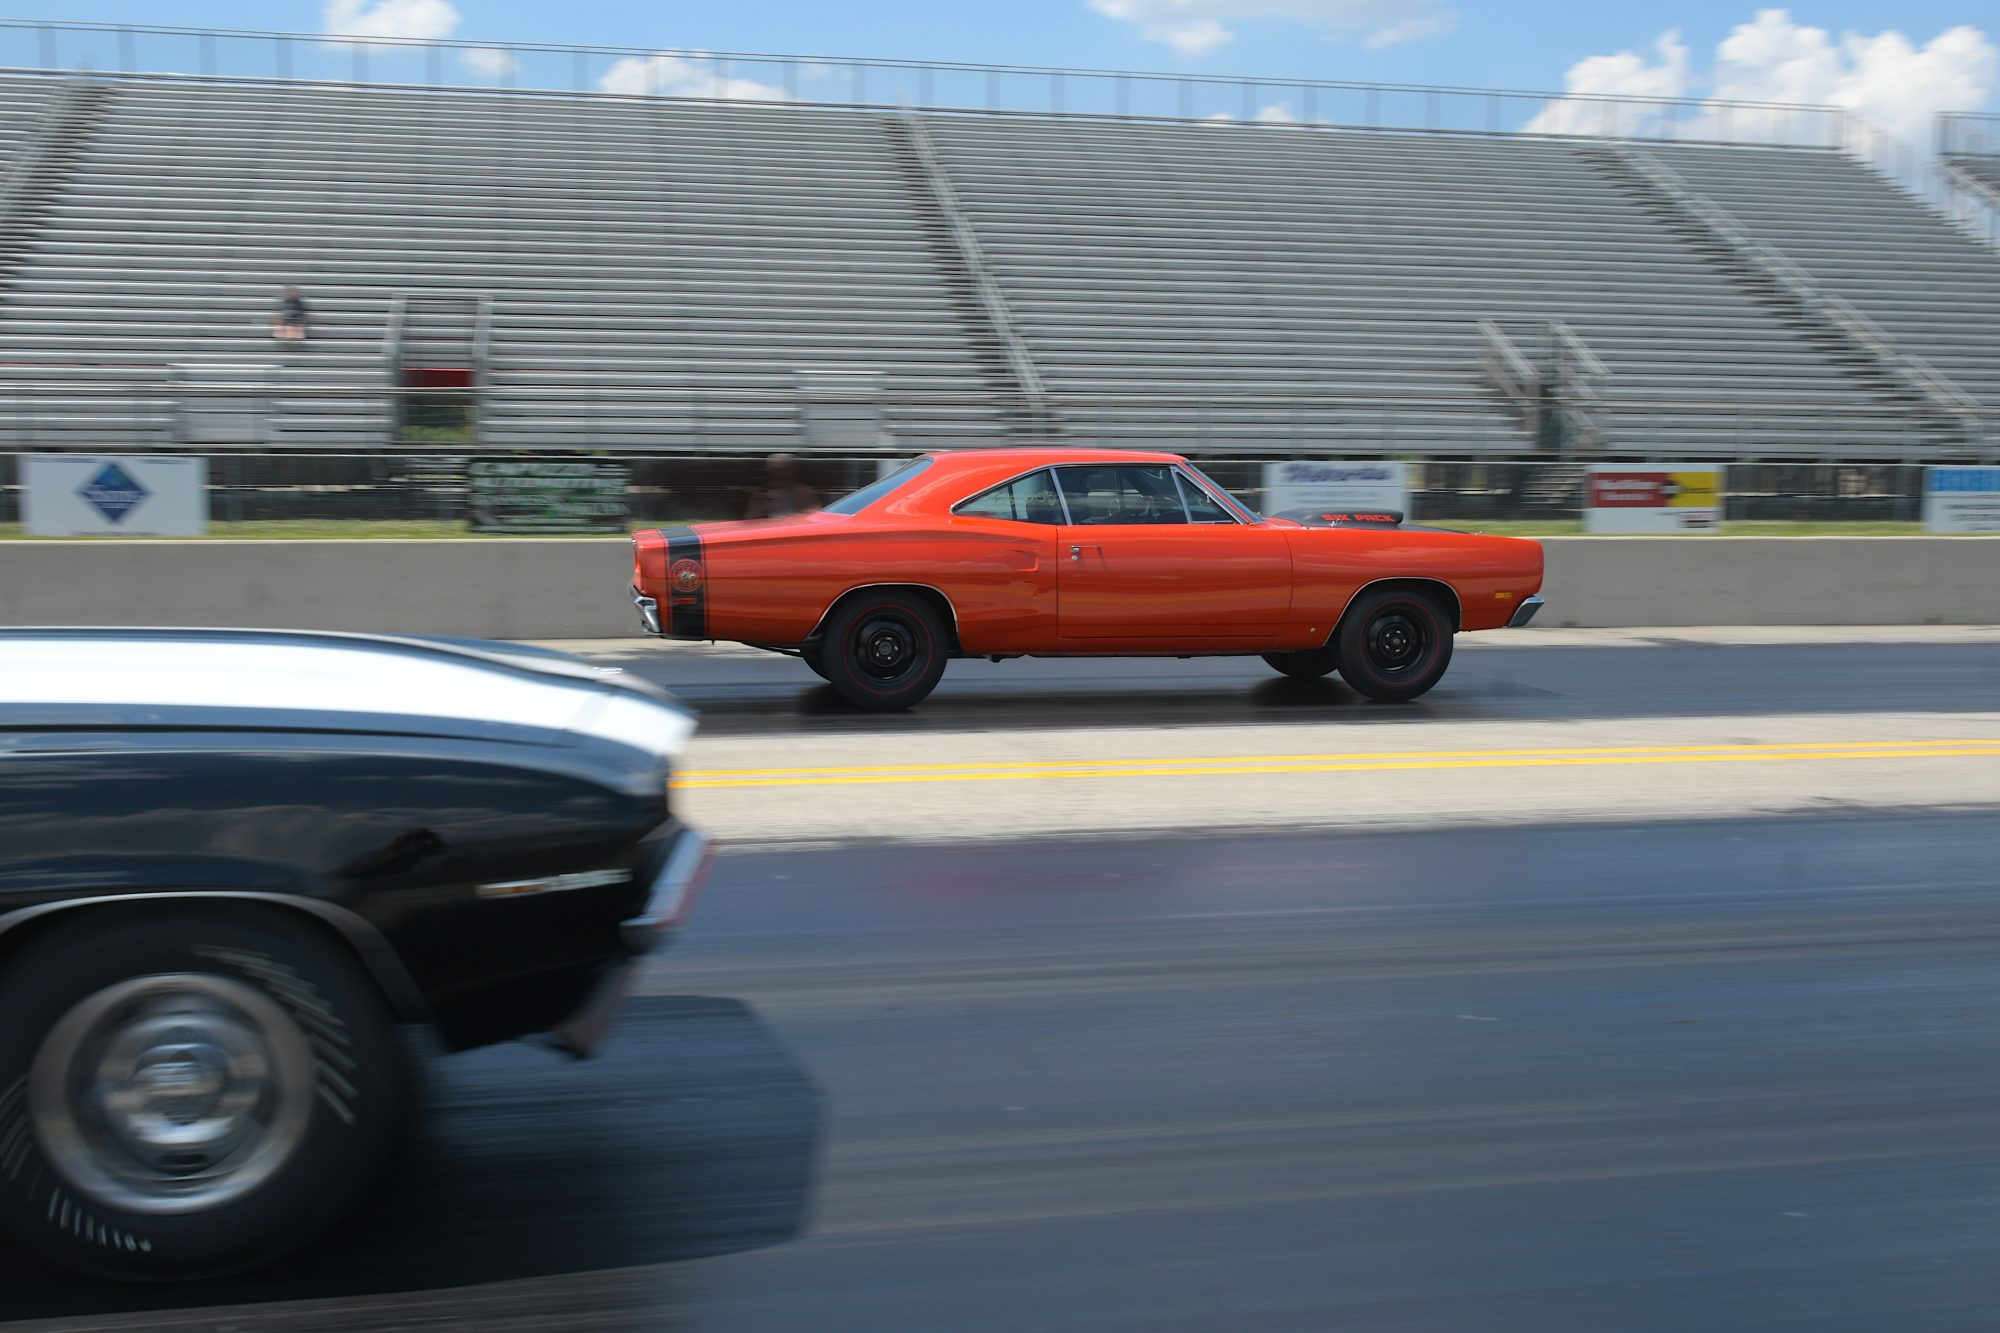 two vehicles racing on a drag strip